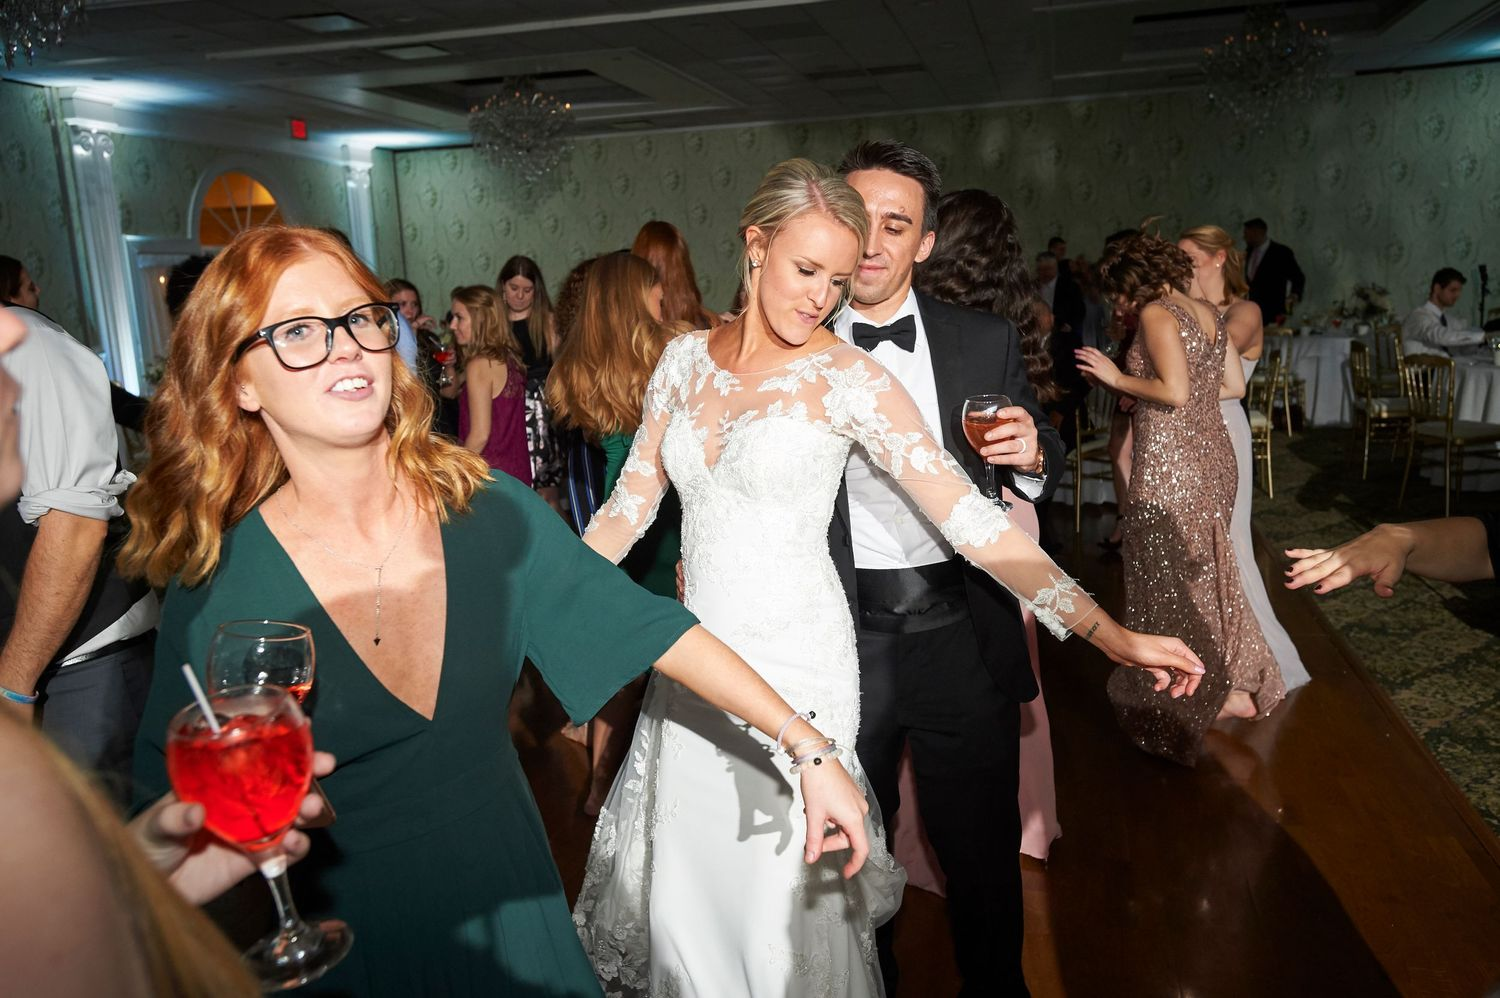 bride and groom dancing during reception at Bucks hotel wedding photo